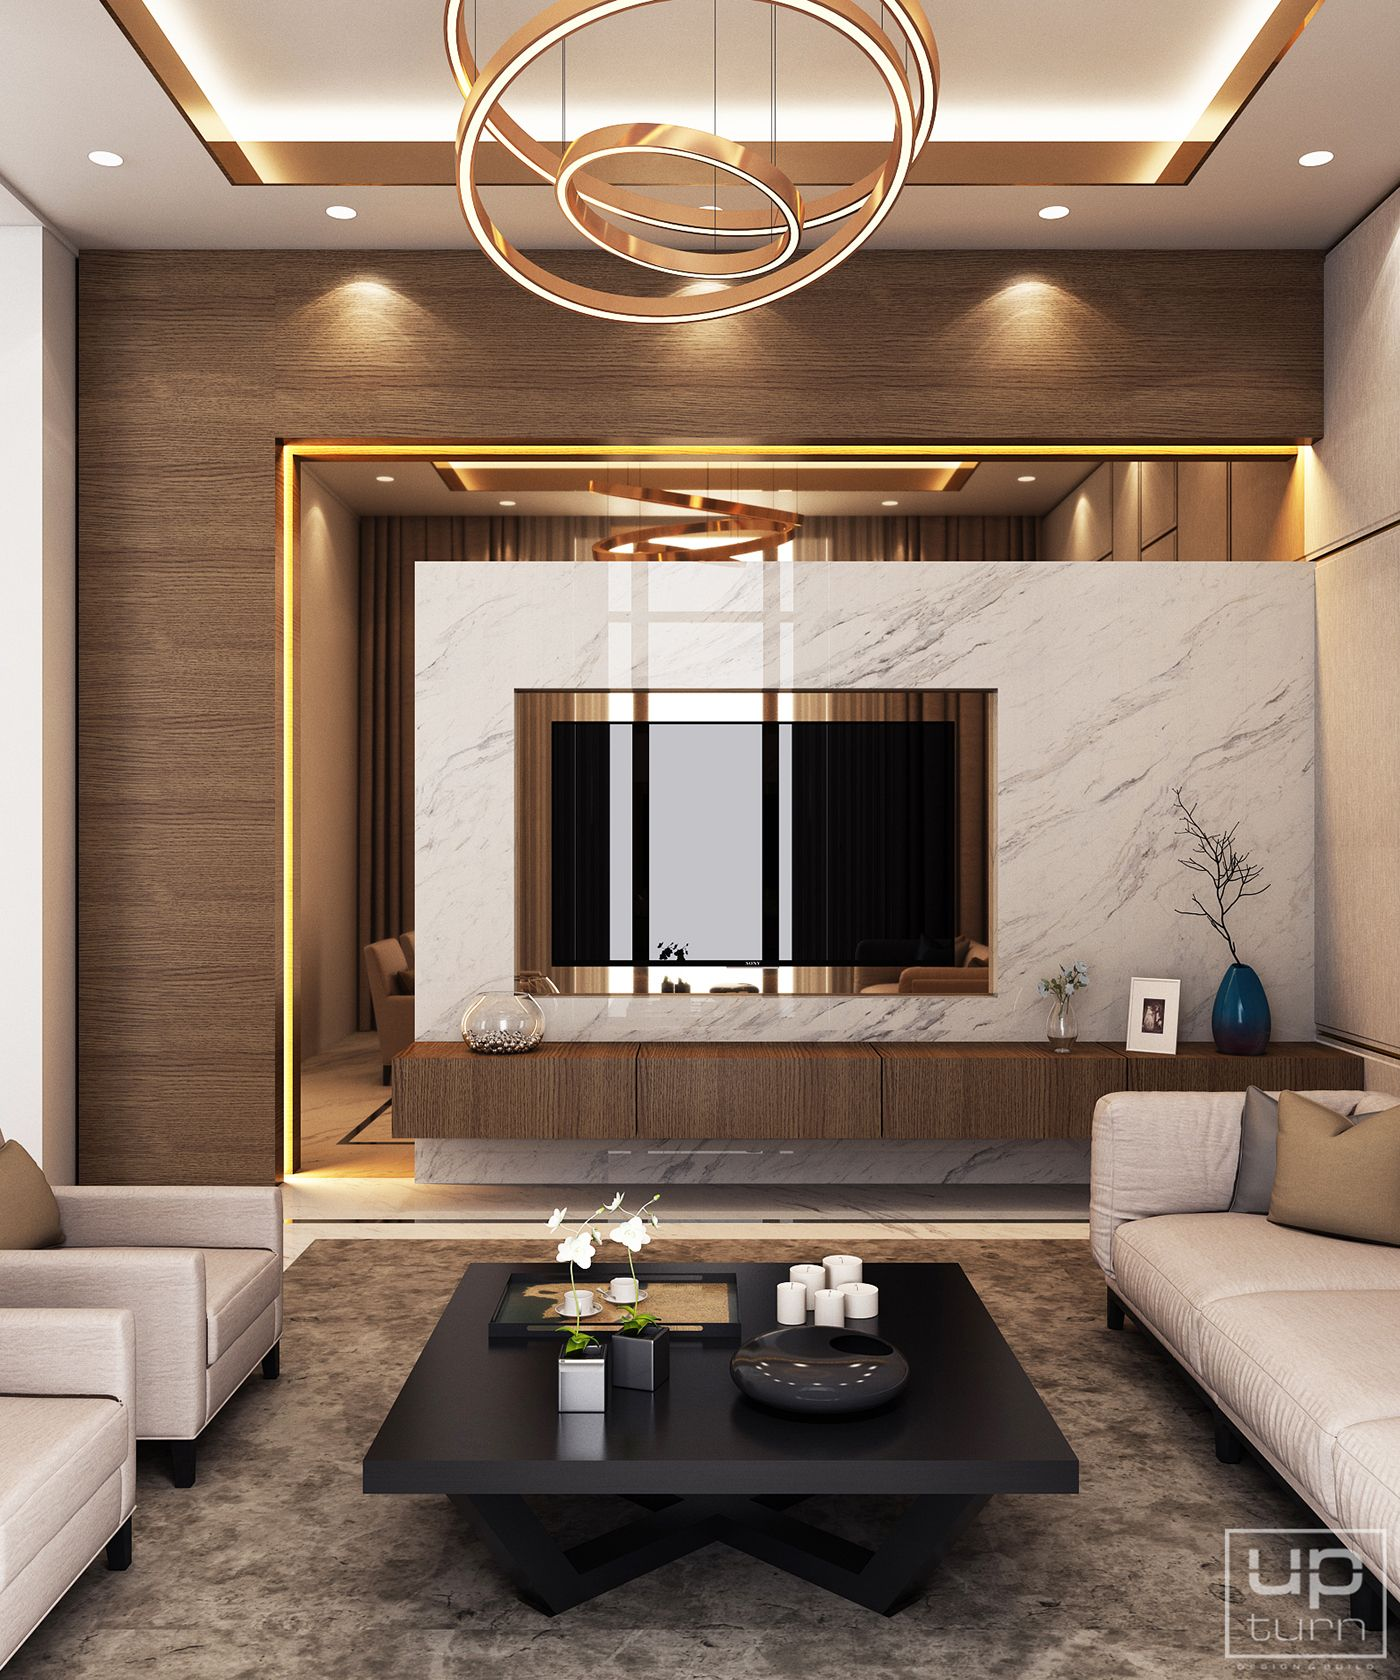 Living Area Cabinet Design: Luxury Modern Villa - Qatar On Behance